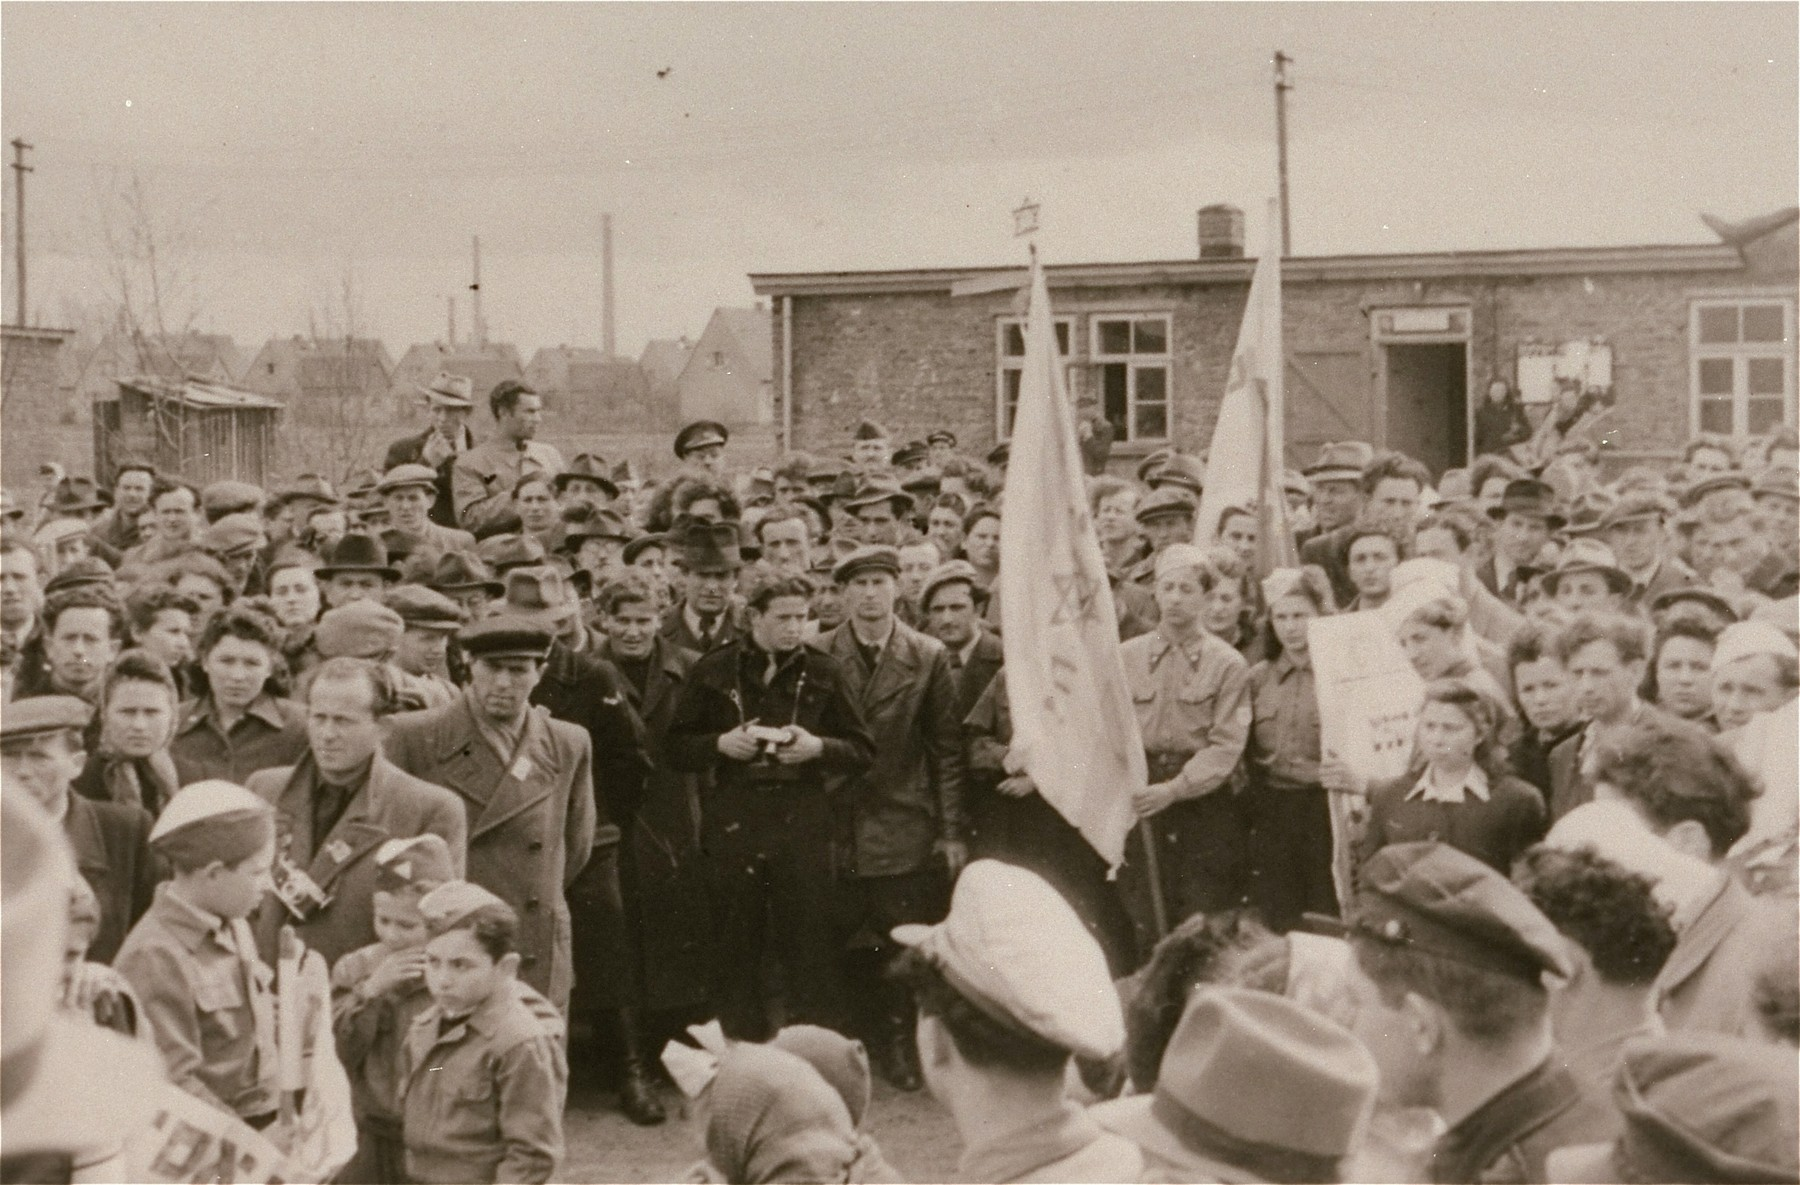 Jewish DPs at the Zeilsheim displaced persons camp hold a rally to promote free immigration to Palestine.